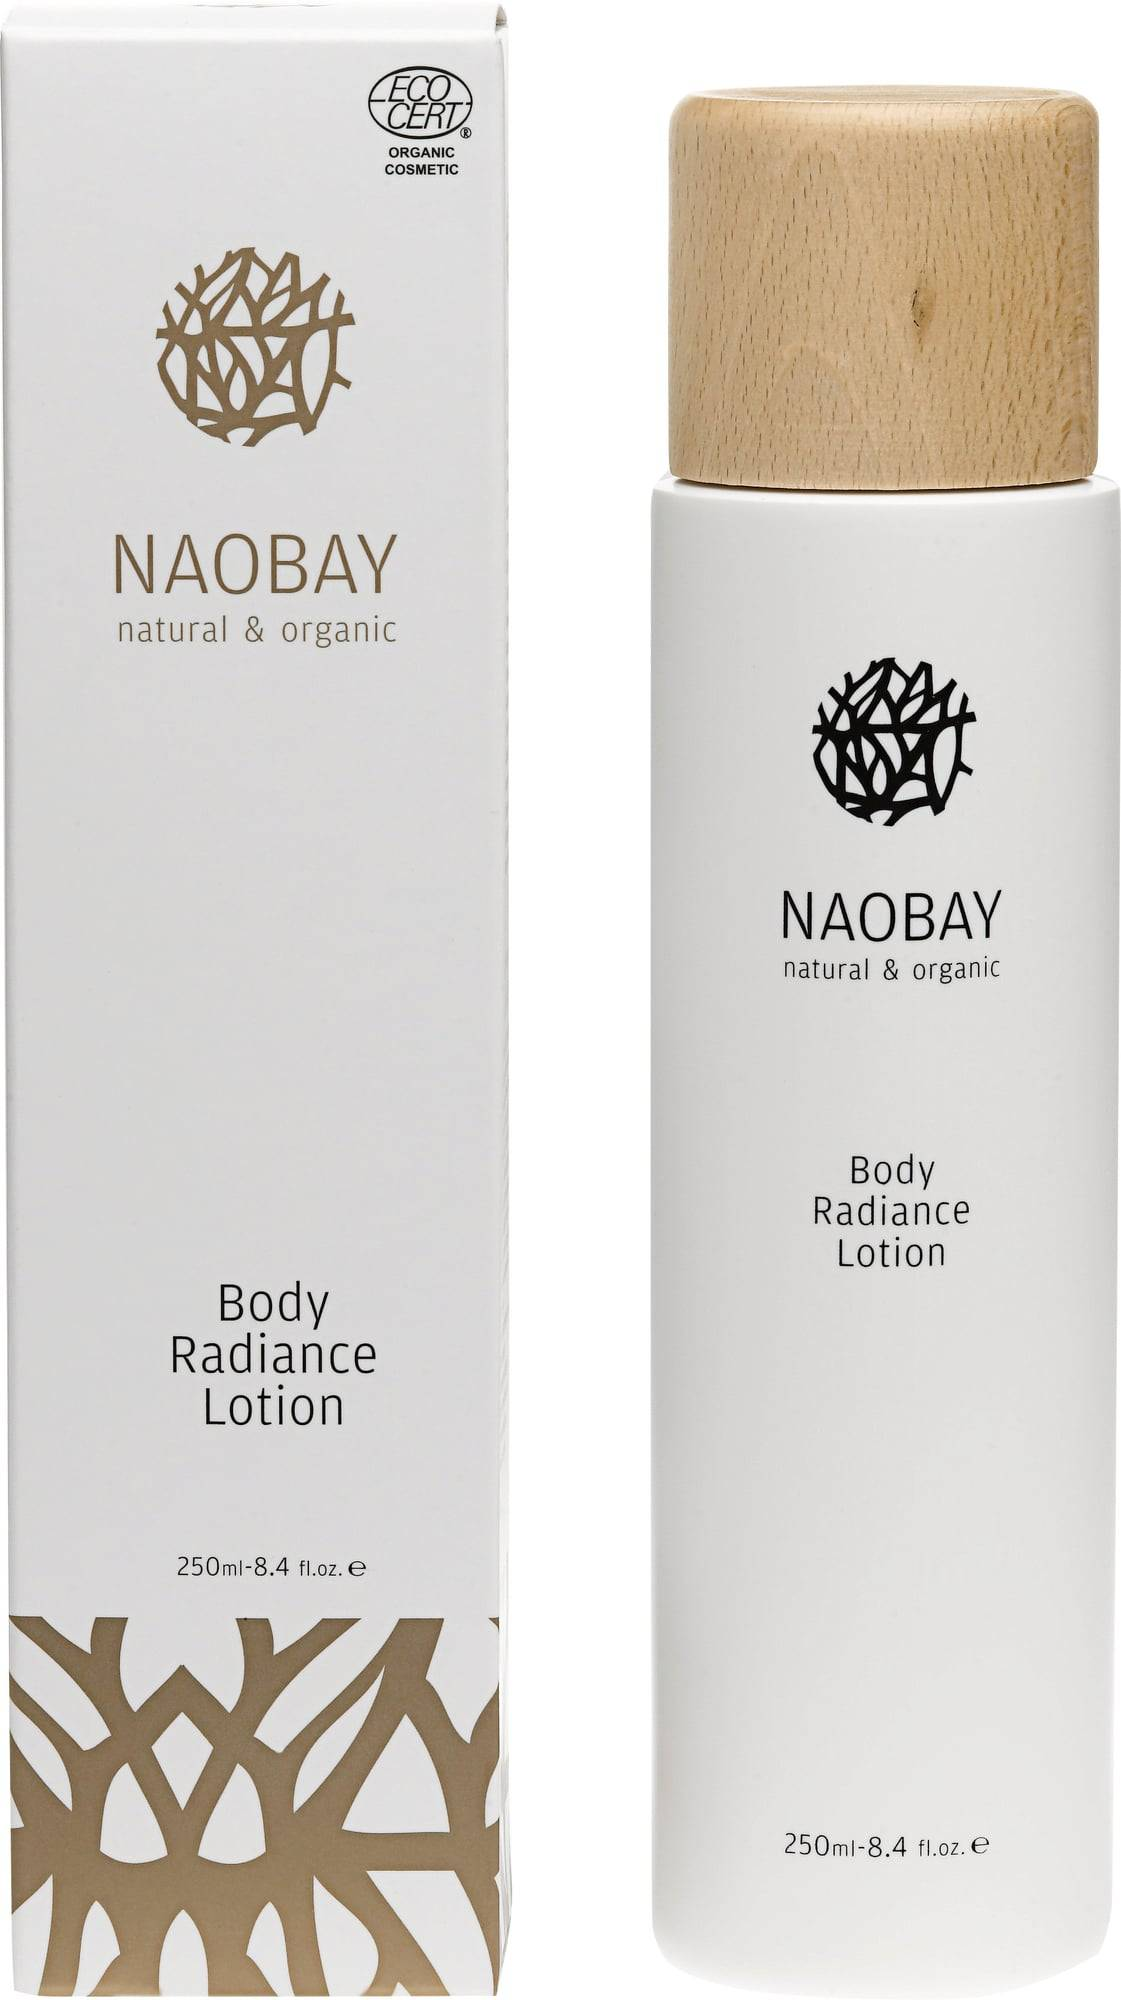 NAOBAY Body Radiance Lotion - 250 ml